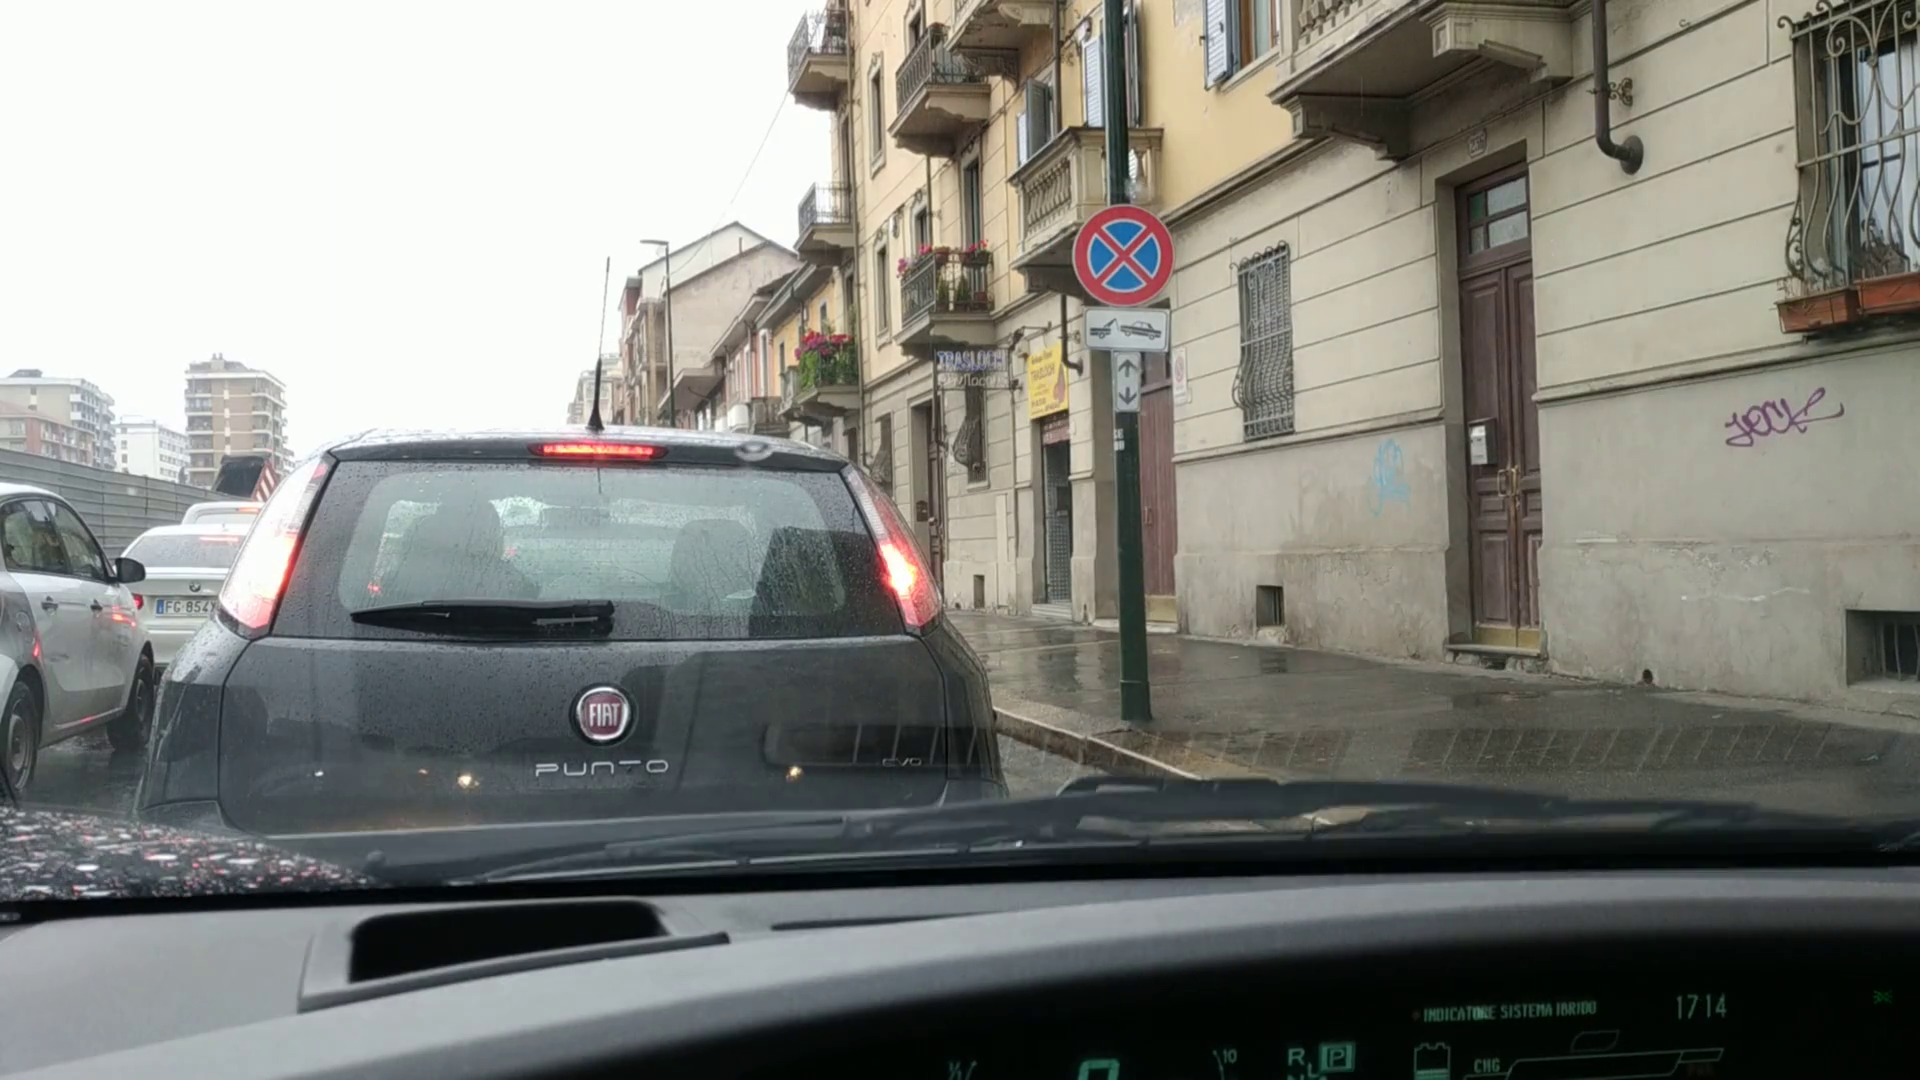 Turin Piedmont Italy May 2019 The Spring Climate Brings Continuous Rainfall The Wiper Of The Car Intermittently Cleans The Glass Viewpoint From The Driving Seat Toyota Prius 25fps Stock Video Footage Storyblocks